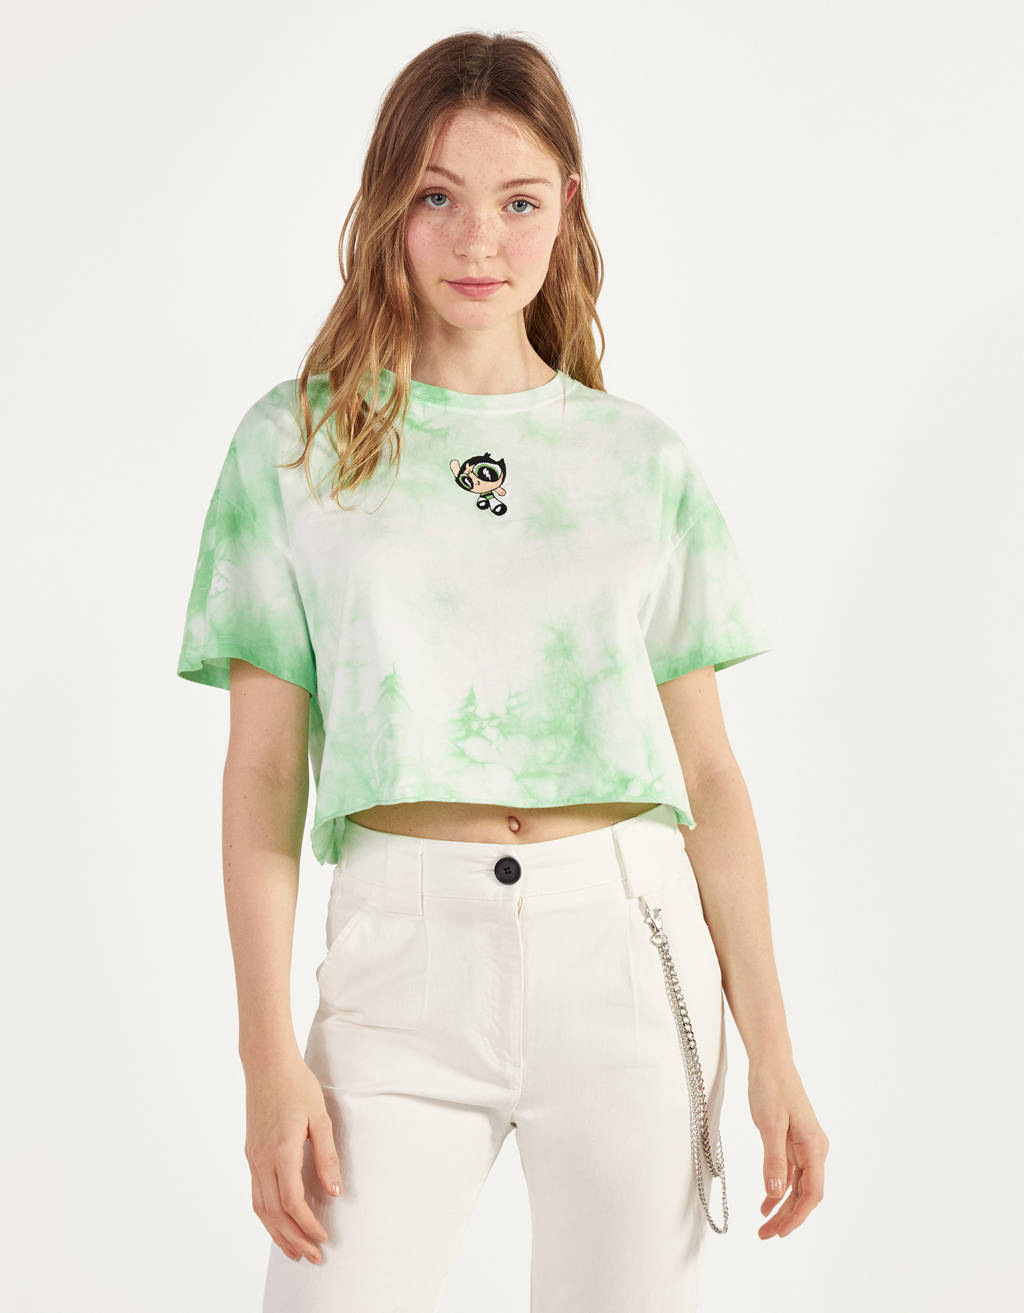 Tie-Dye-Shirt Powerpuff Girls x Bershka